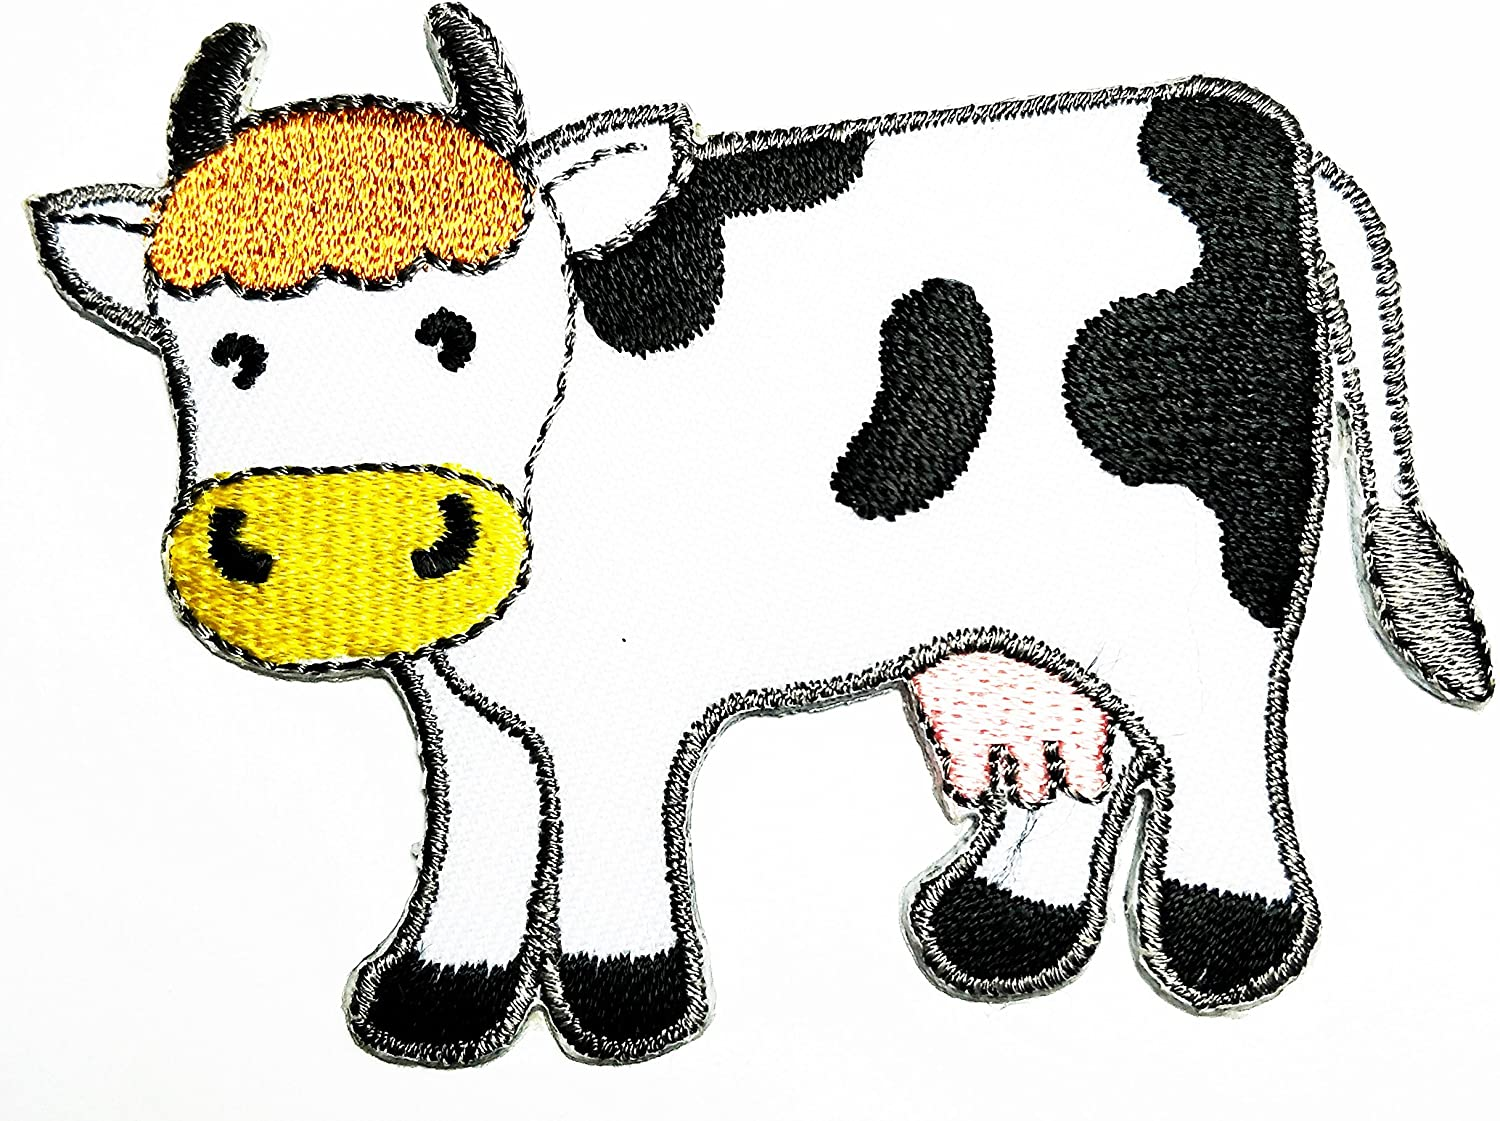 Cows clipart kid, Cows kid Transparent FREE for download on WebStockReview  2020